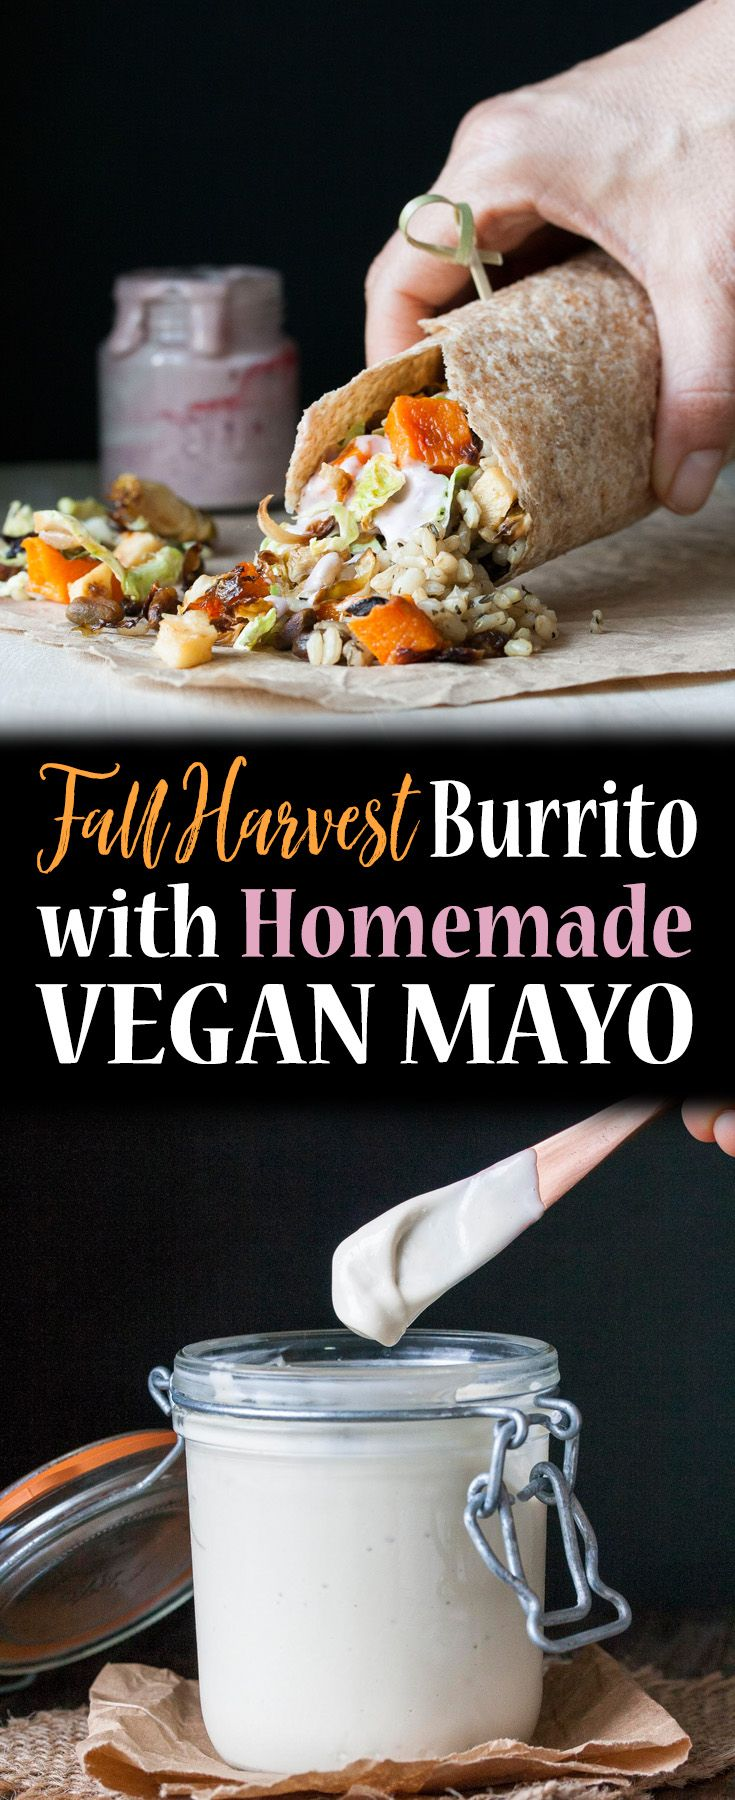 Vegan, Oil Free | Fall Harvest Burrito and Homemade Vegan Mayo